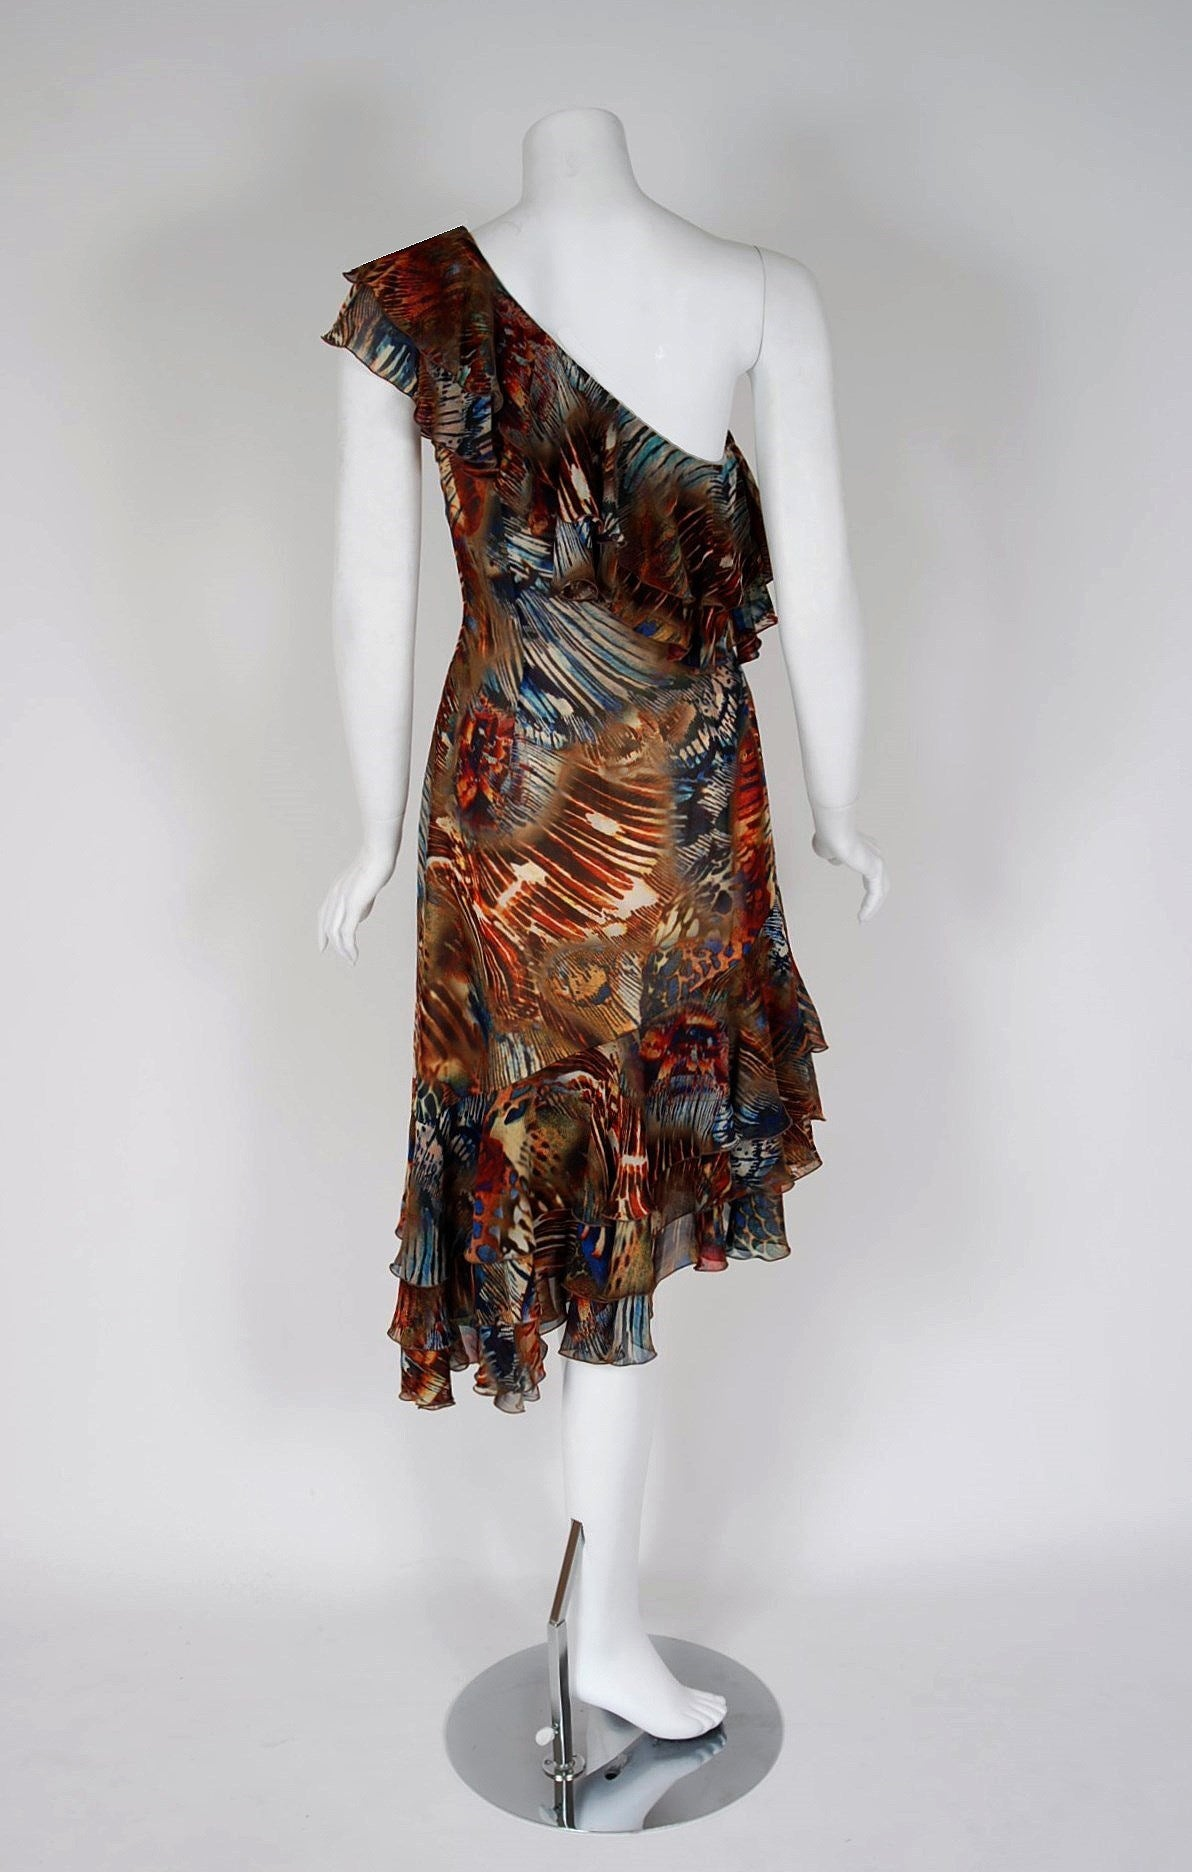 1994 Thierry Mugler Couture Abstract Feather Print Silk One-Shoulder Dress 5